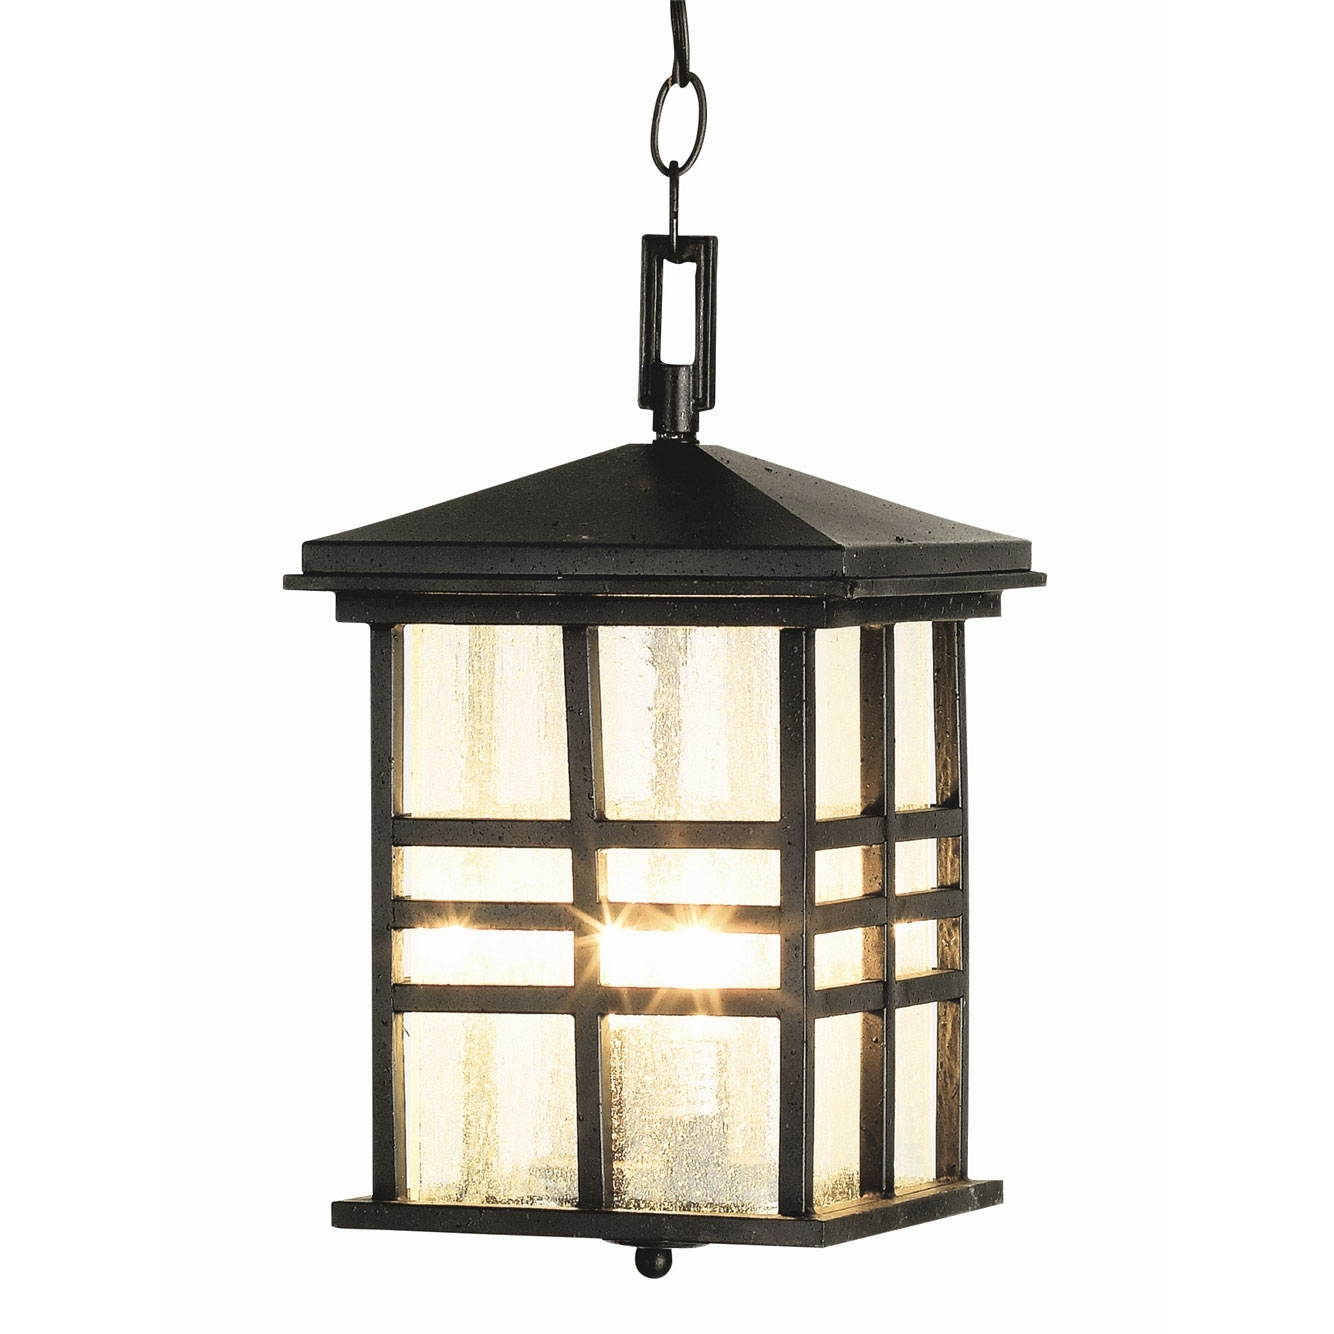 Trans Globe Traditional New England Coastal Outdoor Hanging Lantern Inside Rustic Outdoor Hanging Lights (#15 of 15)